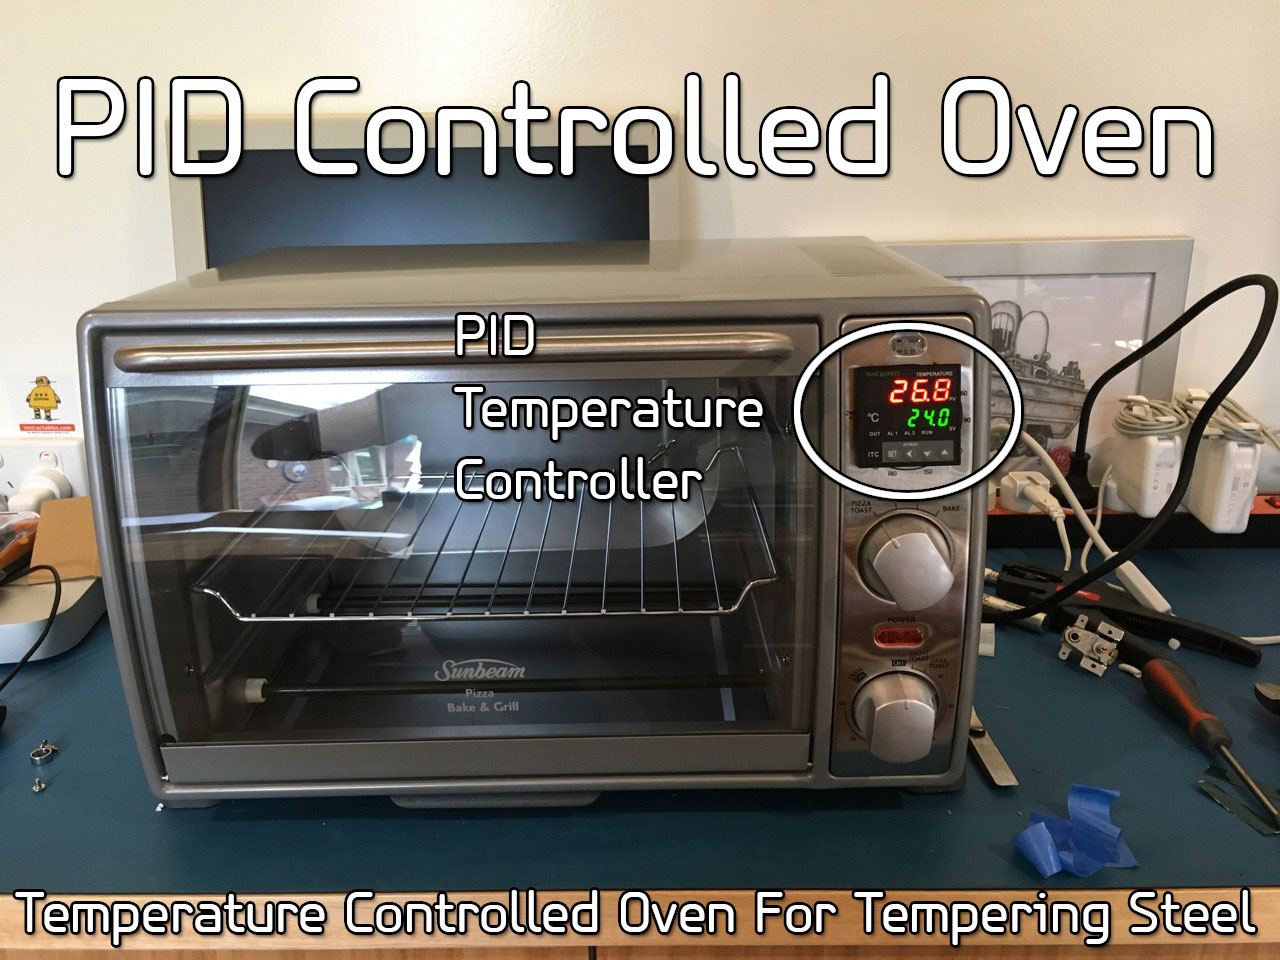 PID Temperature Controlled Oven: 13 Steps (with Pictures)